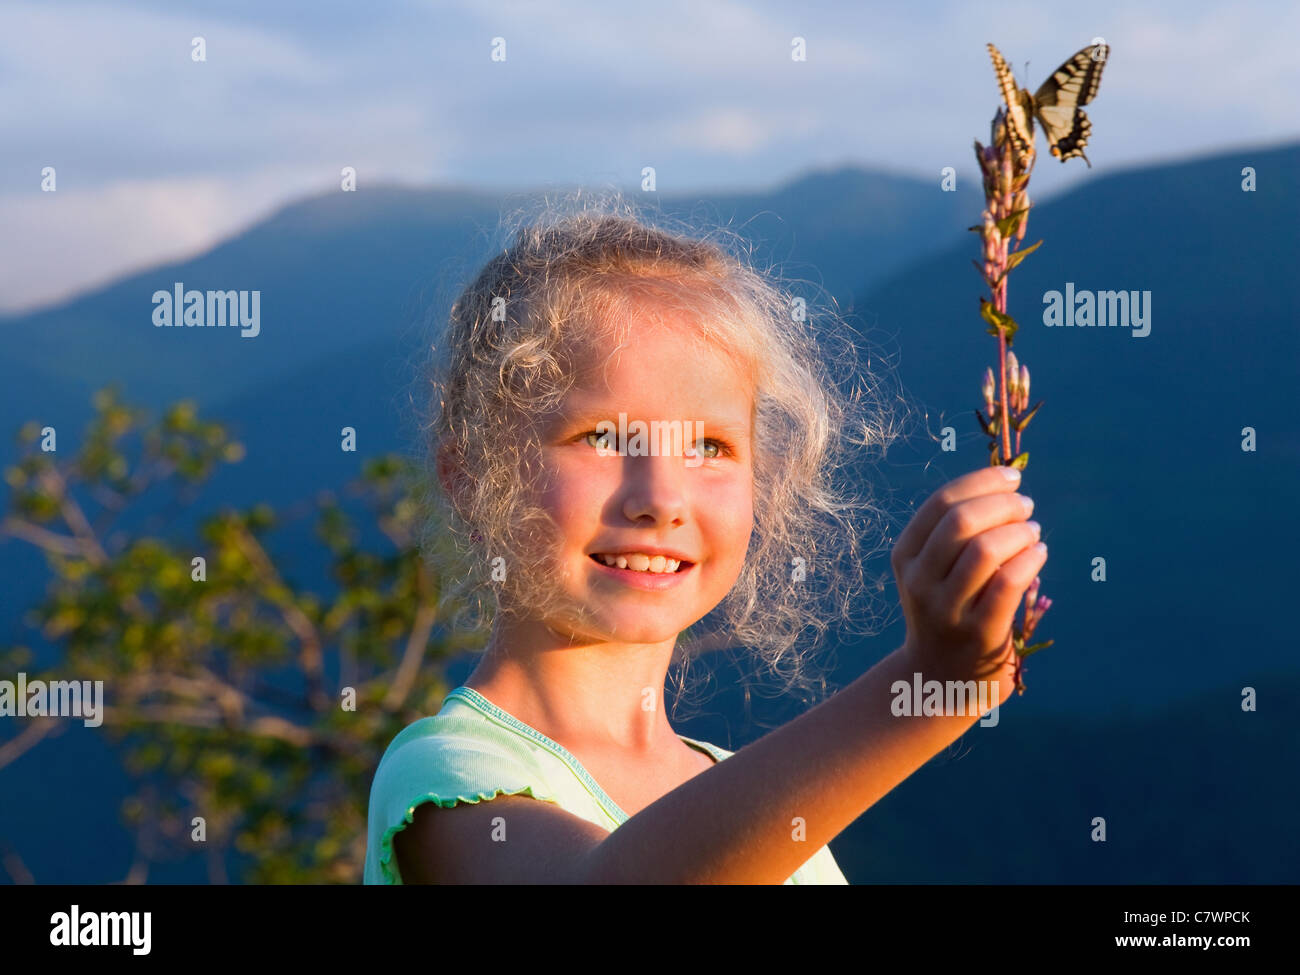 Small sunburnt caucasian girl in last mountain sunset light admire on yellow Swallowtail butterfly - Stock Image